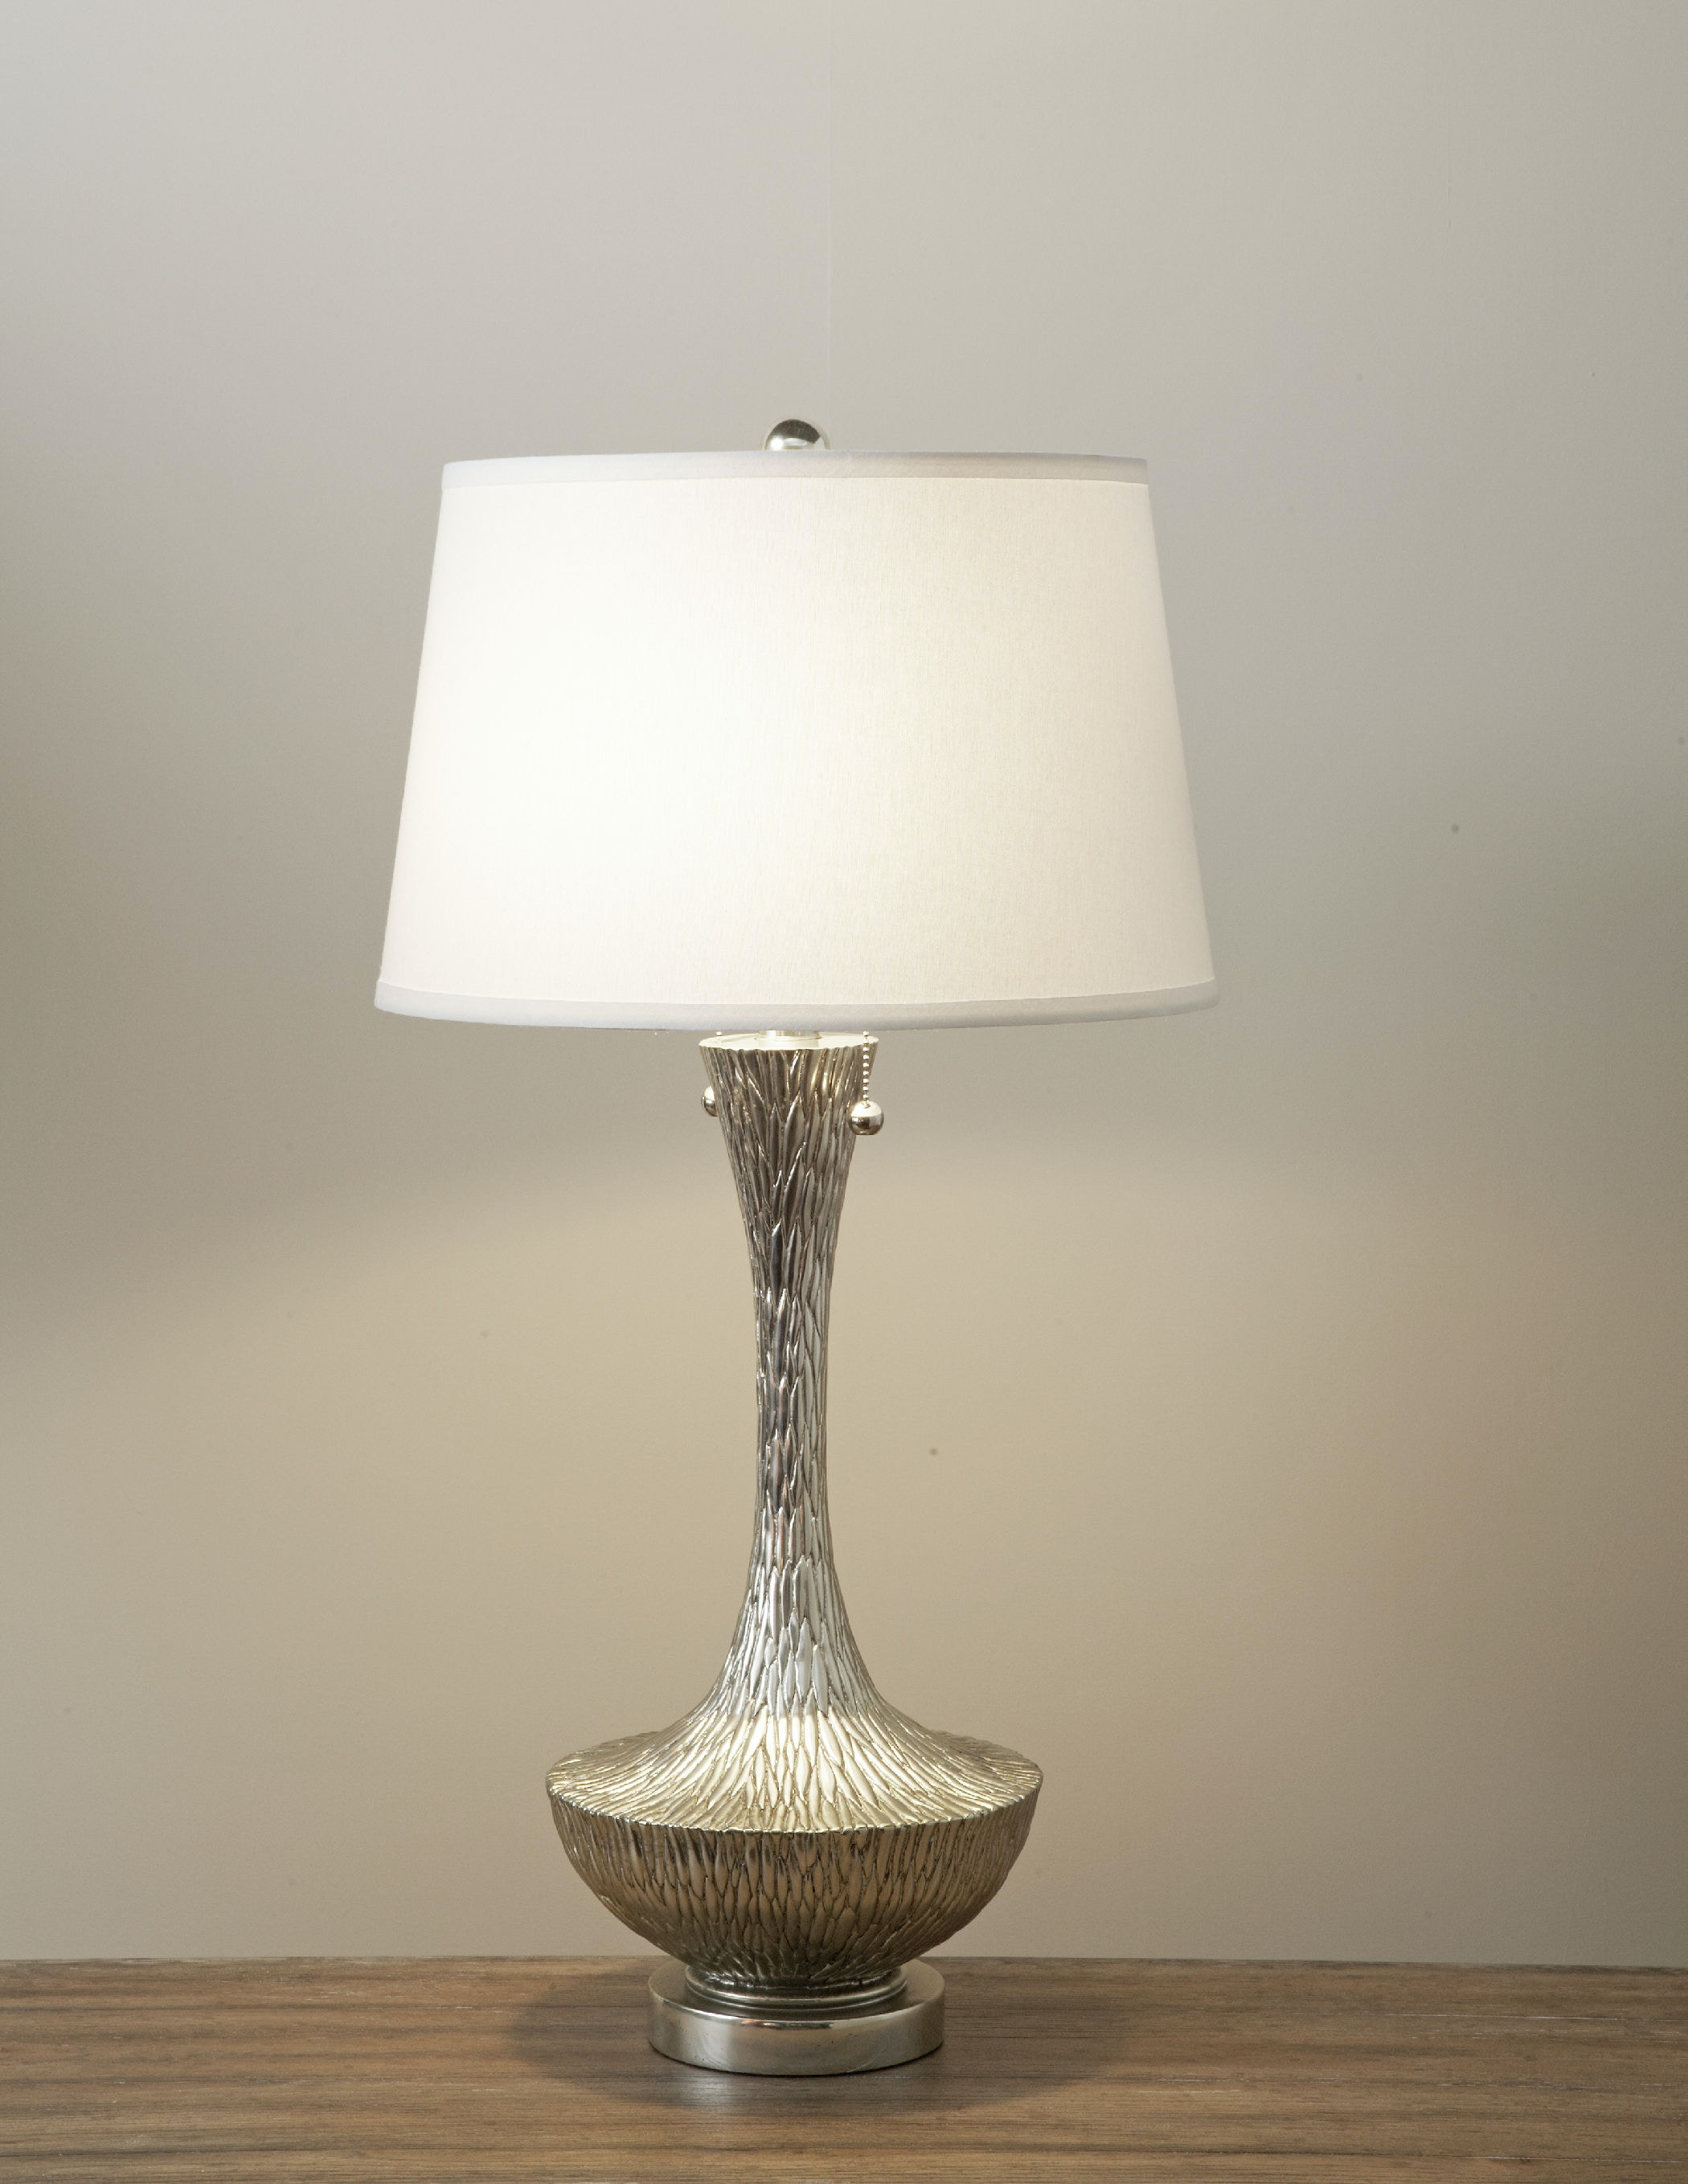 embossed silver table lamp st414325